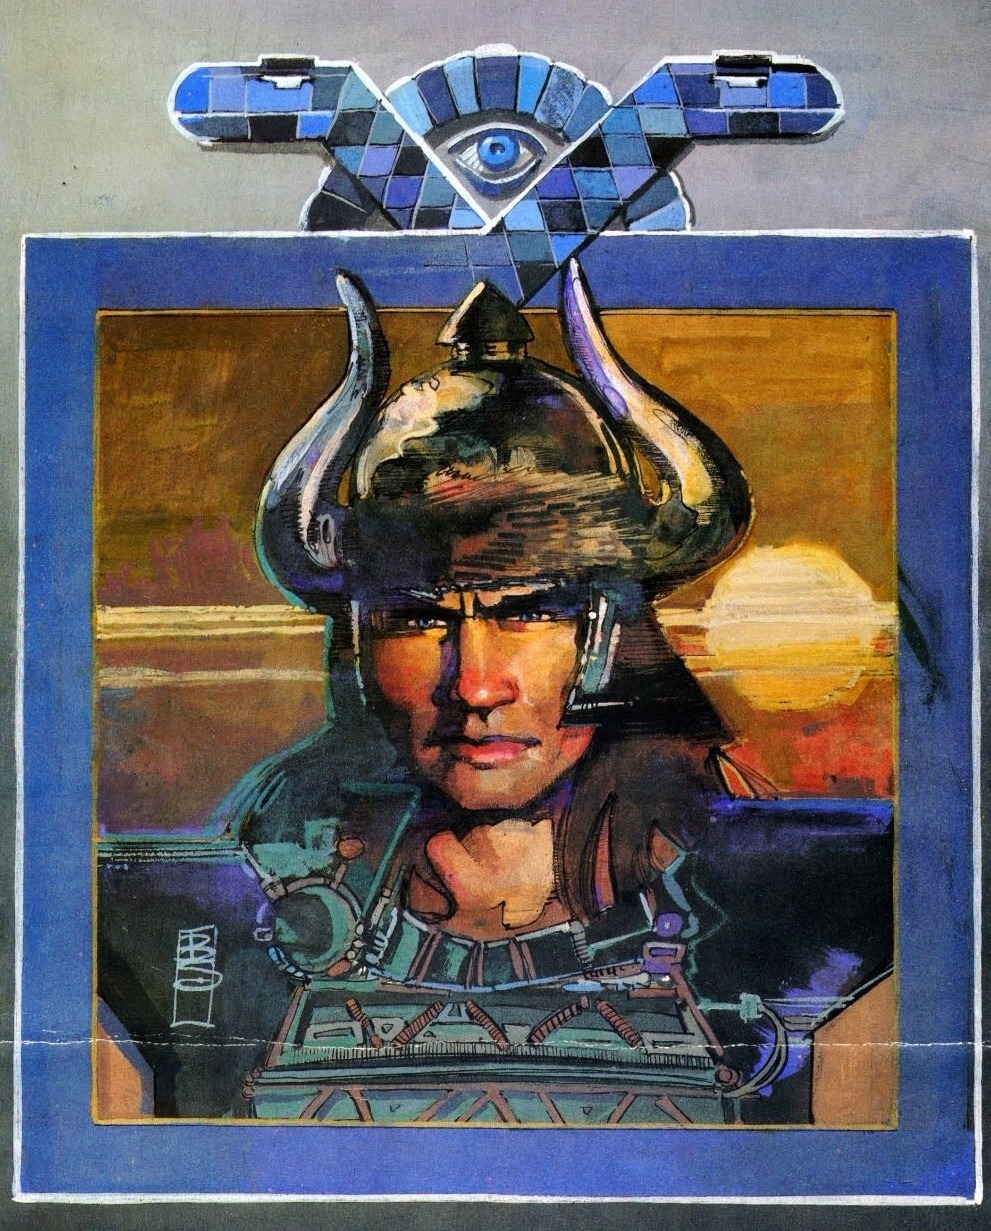 Conan the Barbarian - art by Bill Sienkiewicz .1982.